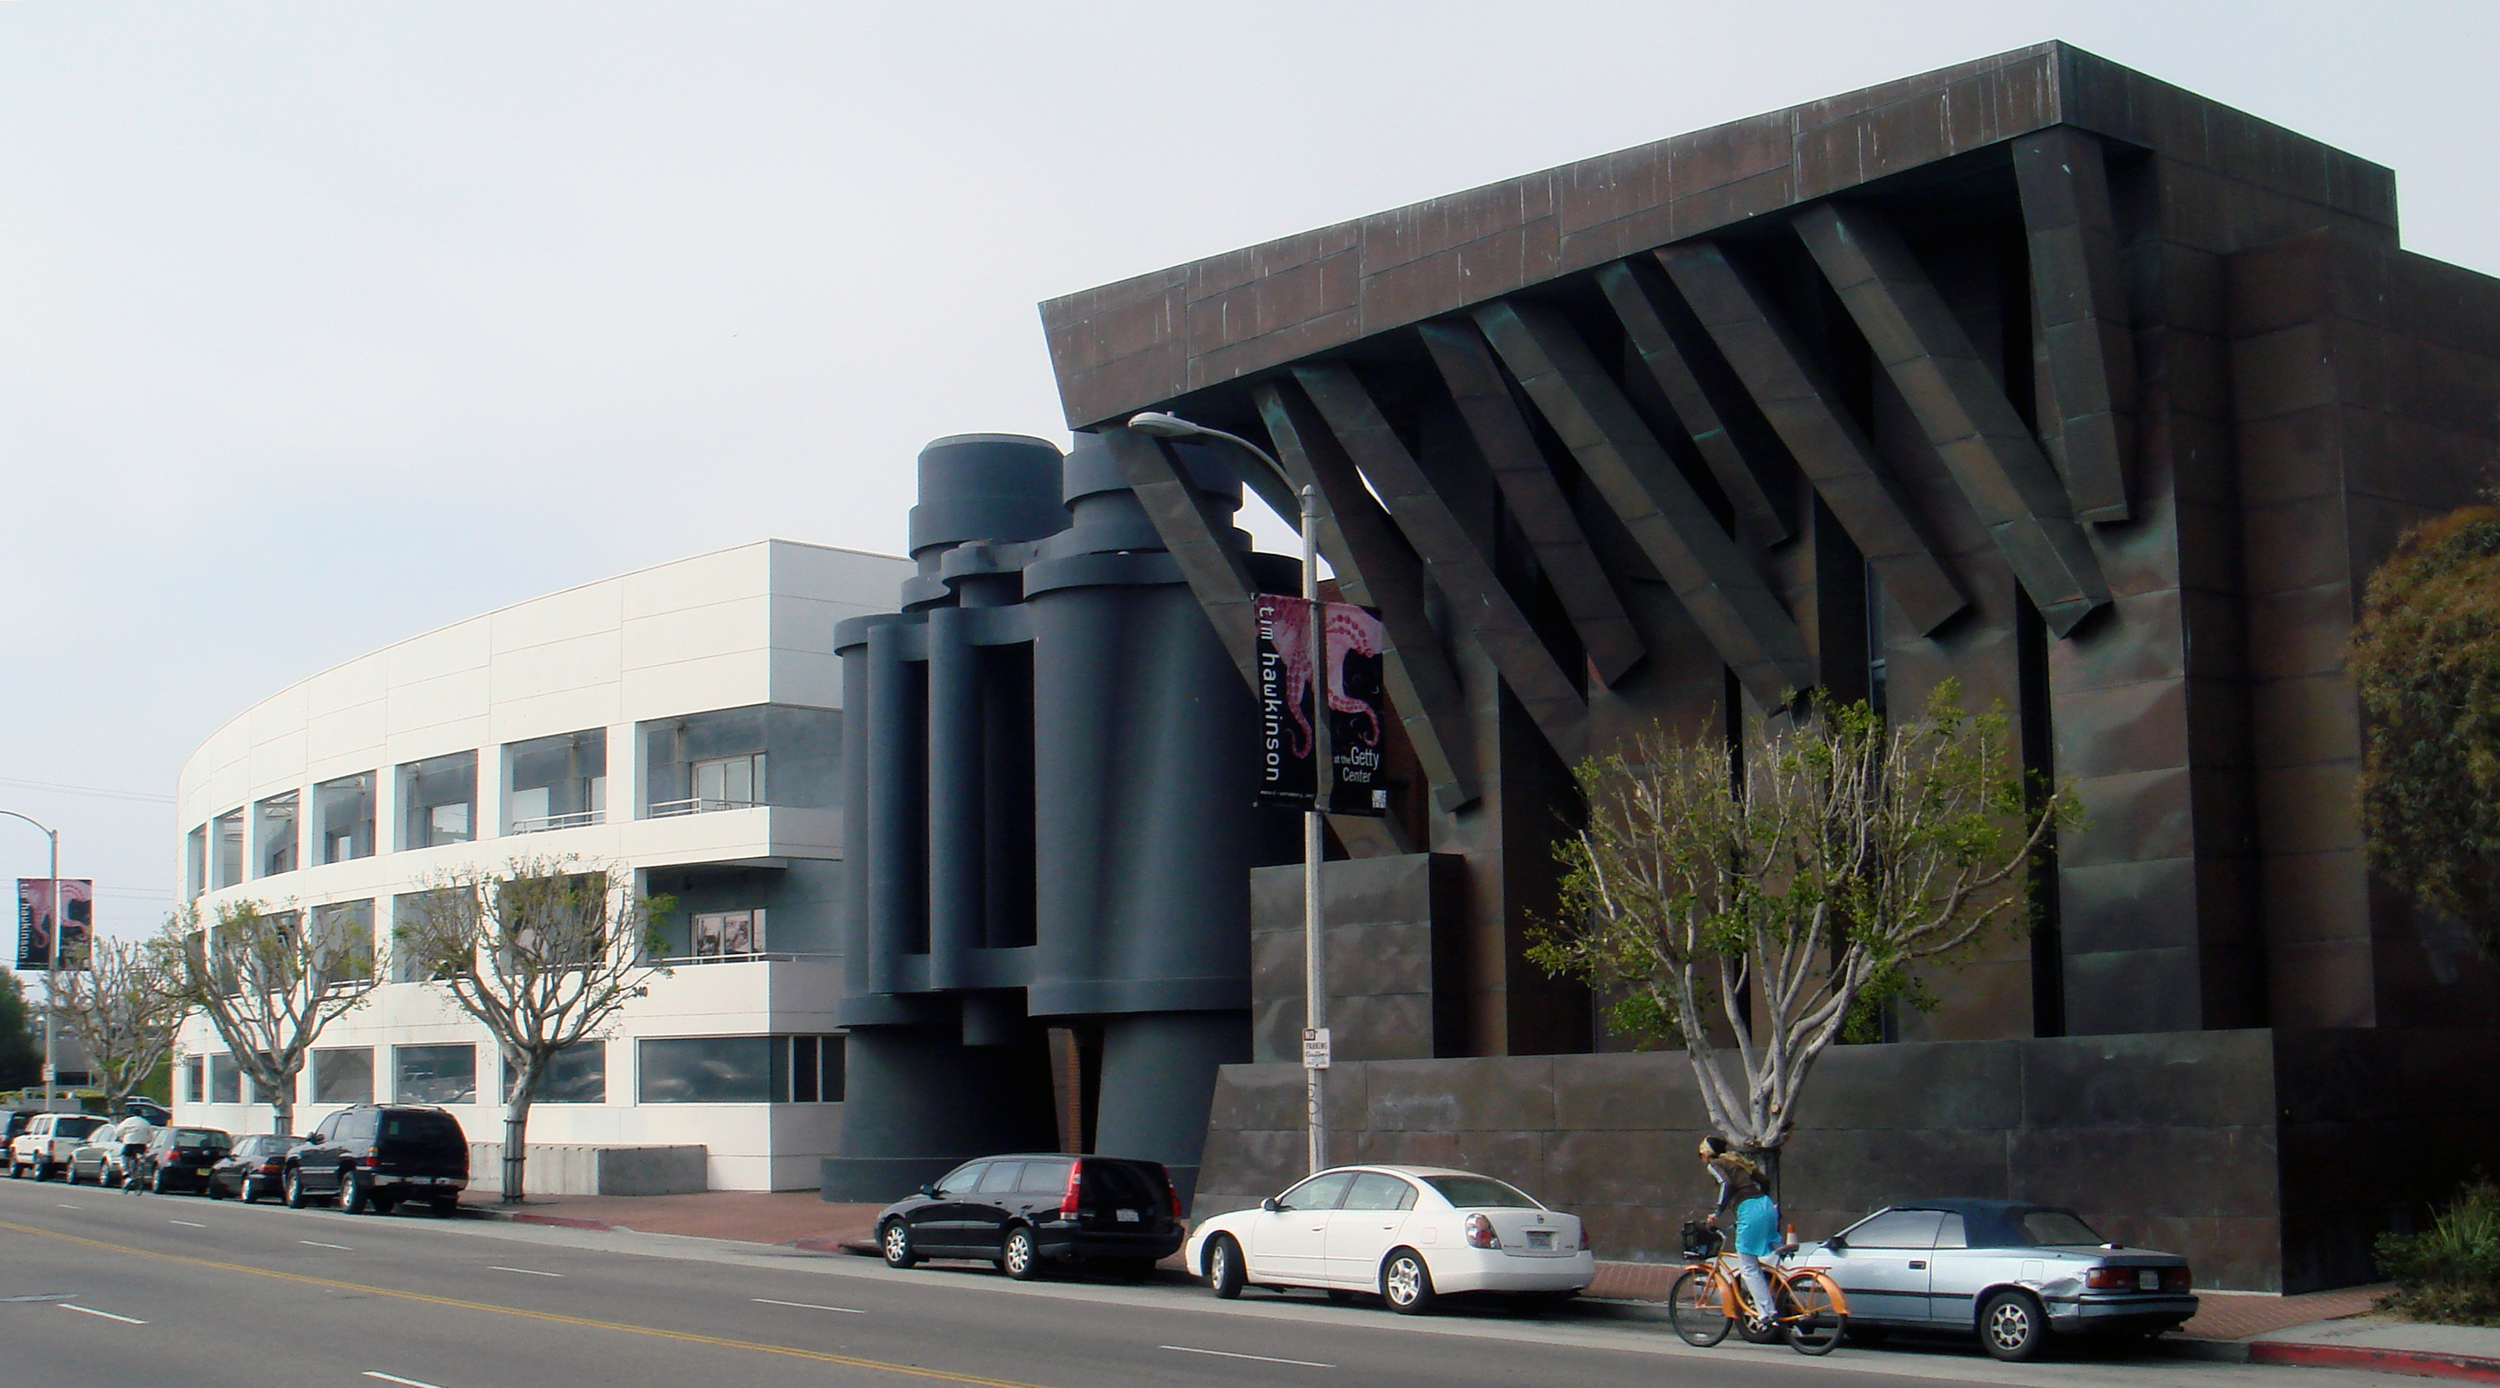 Chiat/ Day/ Mojo headquarters, Venice, California